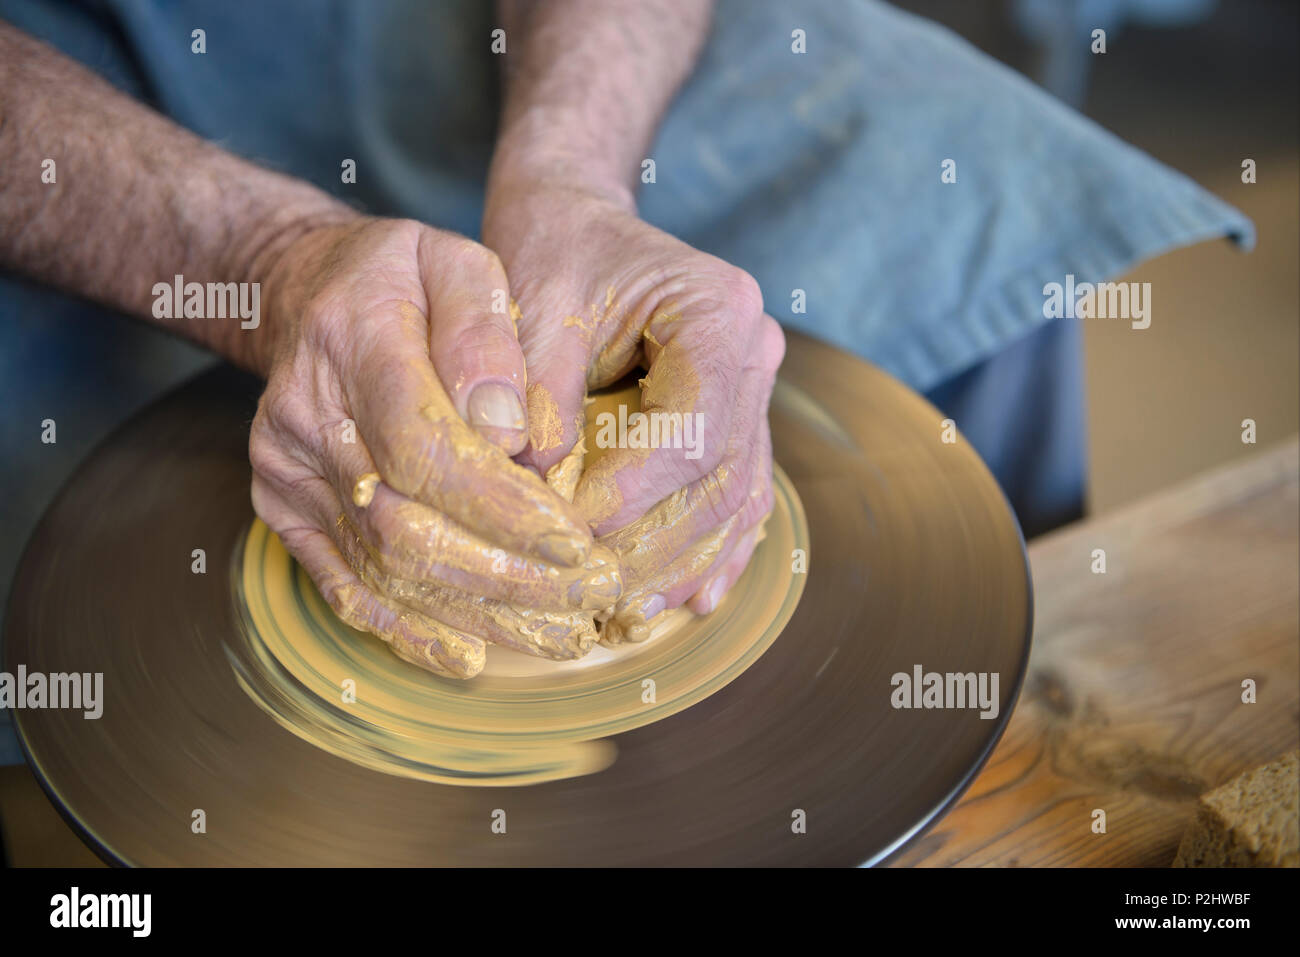 Clay being shaped on a rotating pottery wheel by the potter in the pottery, Vellberg, Schwaebisch Hall, Baden-Wuerttemberg, Germ - Stock Image